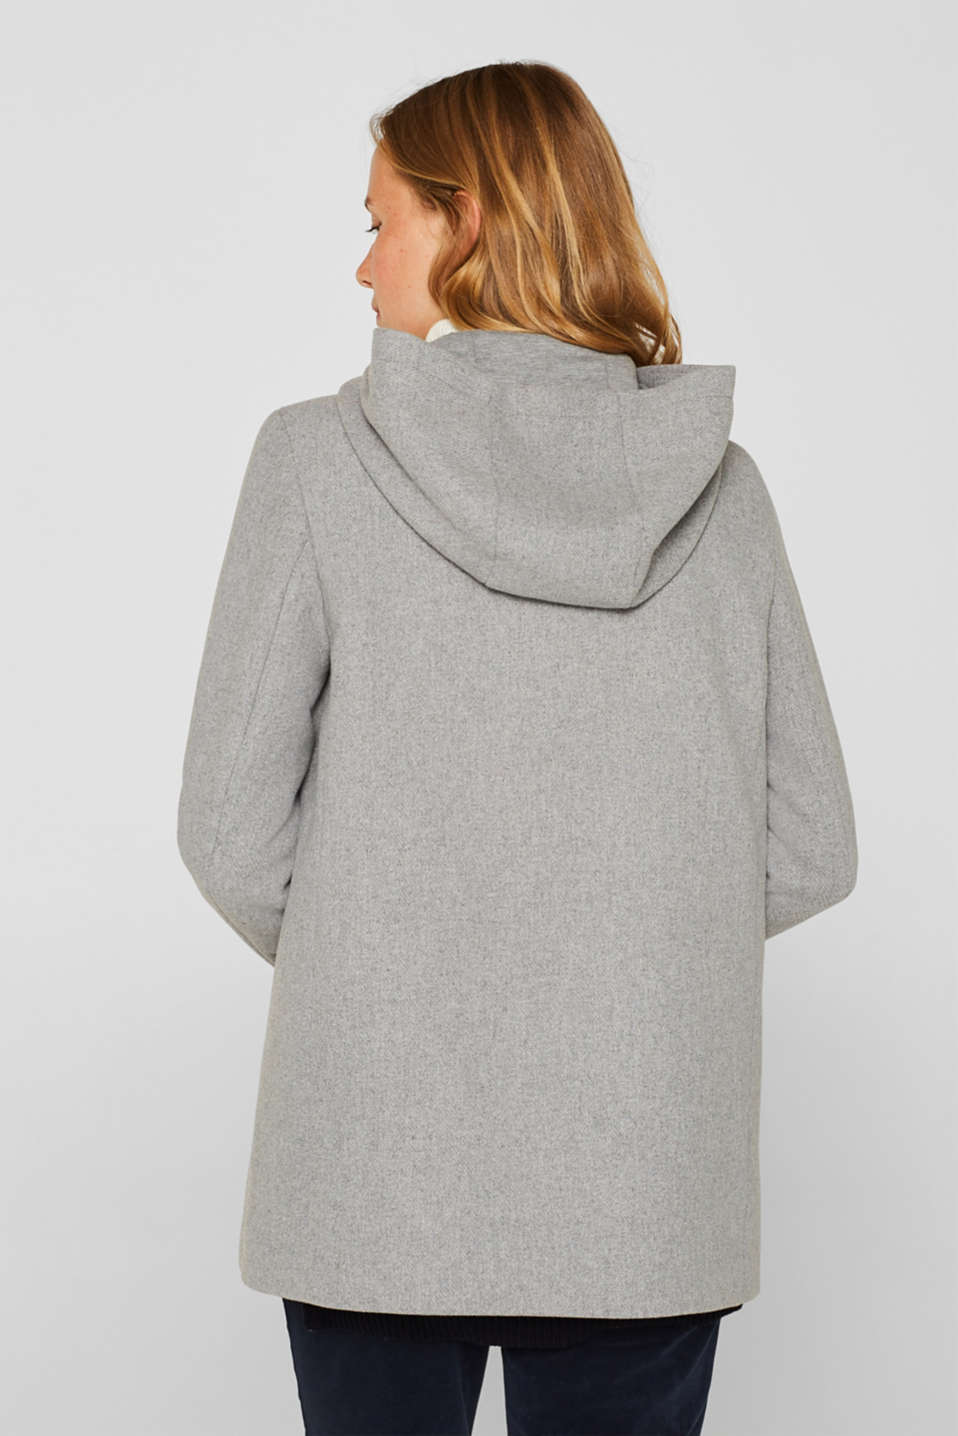 Jackets outdoor woven, LIGHT GREY 5, detail image number 3